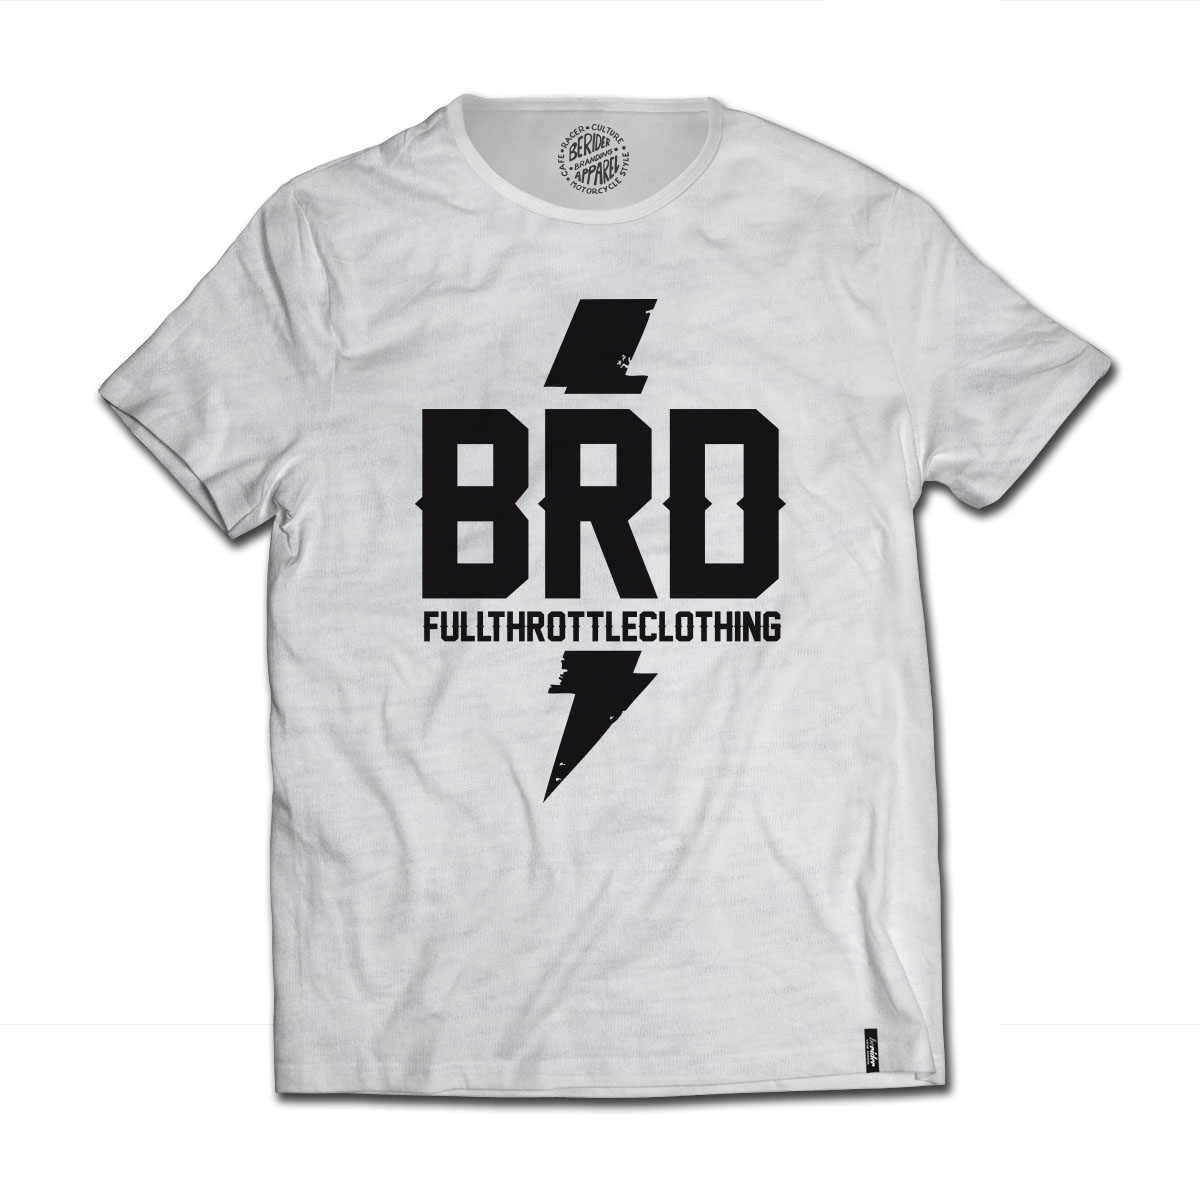 T-shirt Cafe Racer Berider Full Throttle